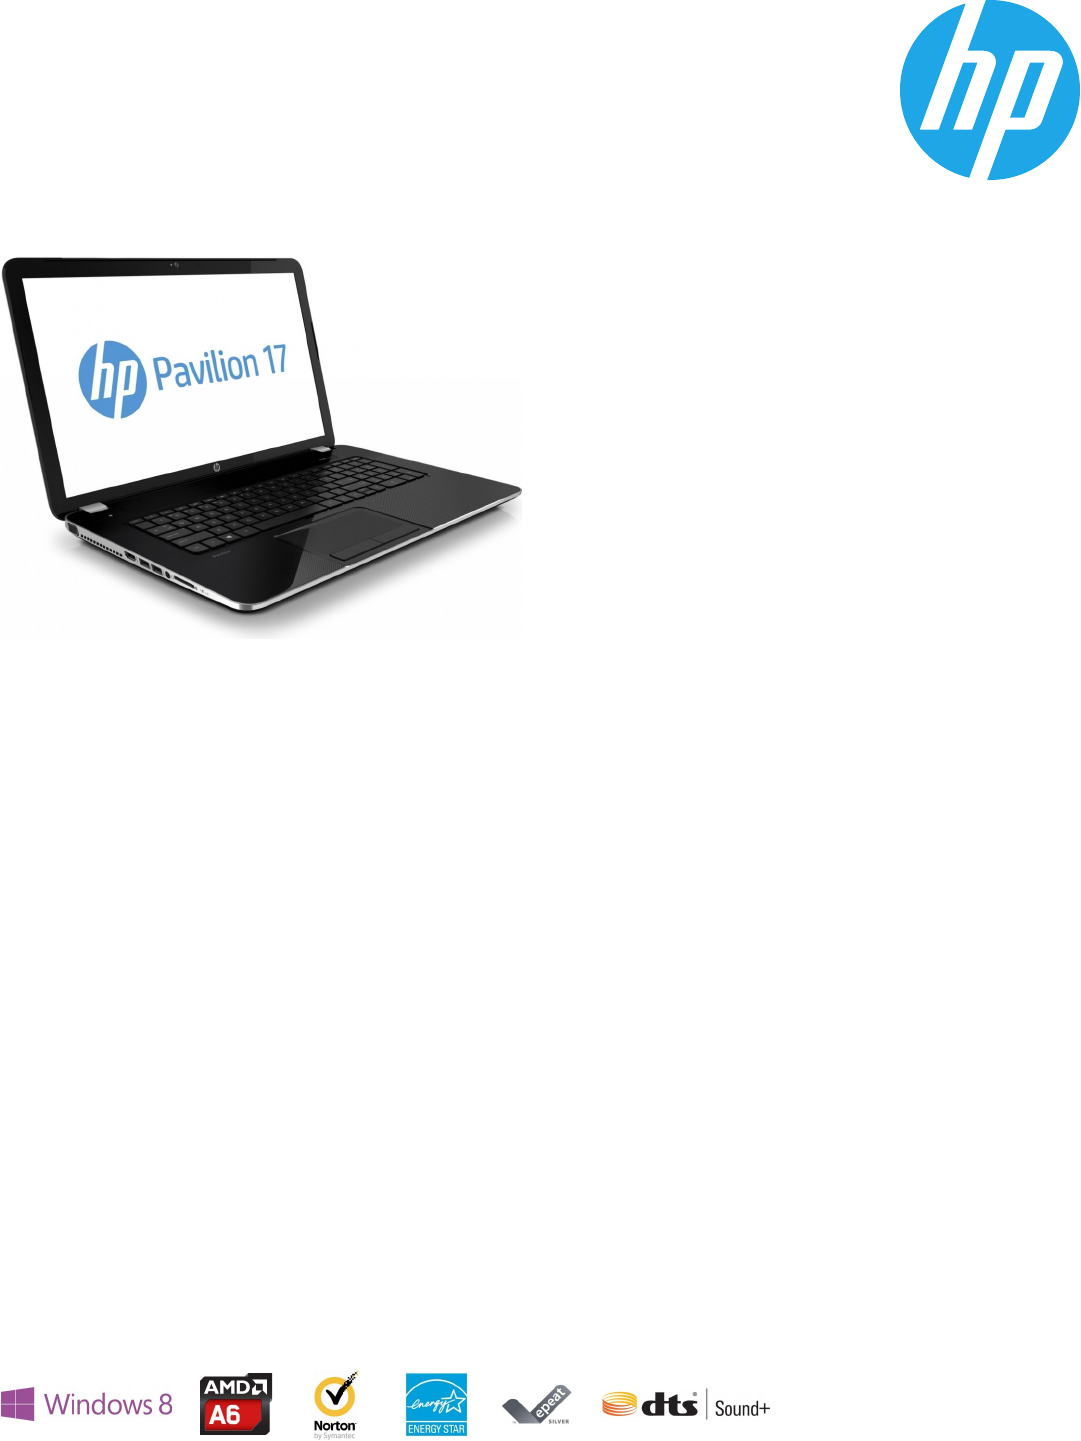 HP Pavilion 17-e030us. Notebook PC